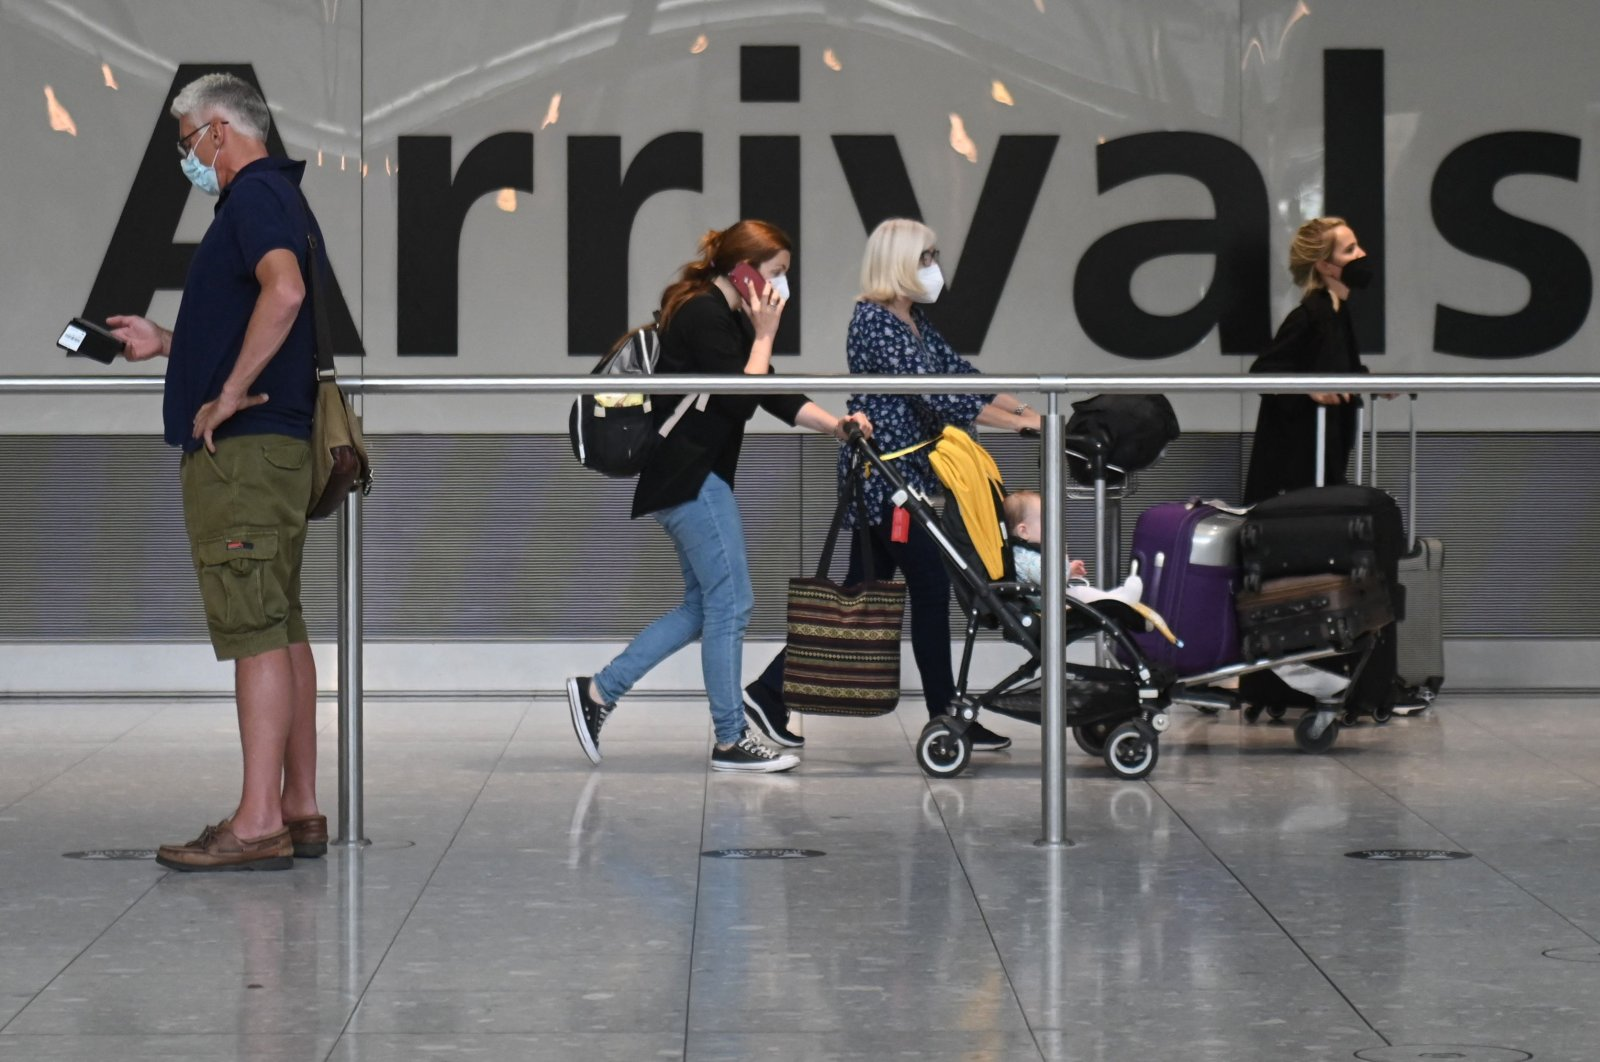 Passengers push their luggage after arrival to Terminal 5 at Heathrow Airport in London, U.K., June 3, 2021. (AFP Photo)